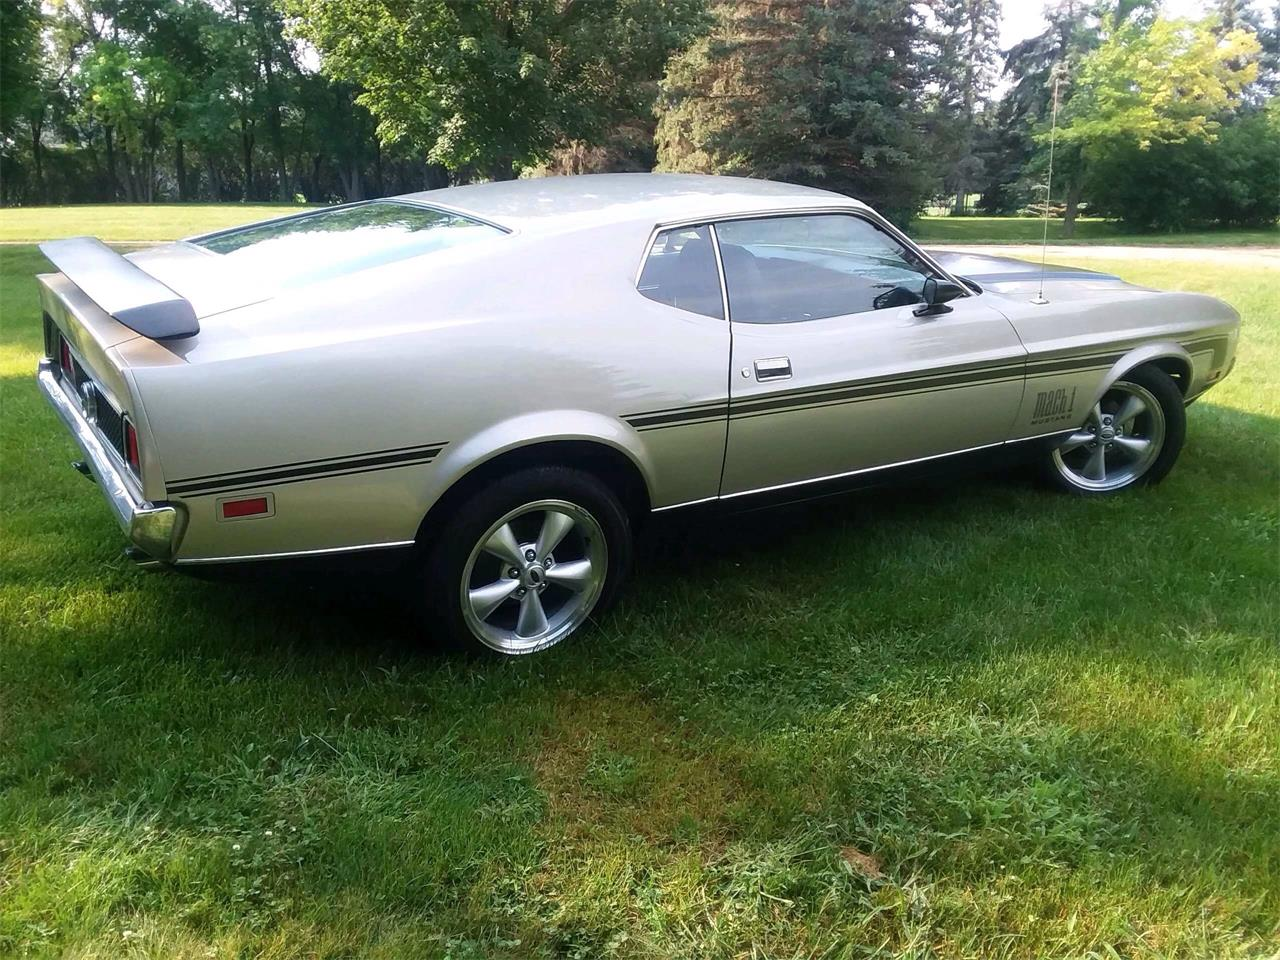 1971 Ford Mustang Mach 1 (CC-1294839) for sale in Brookings, South Dakota